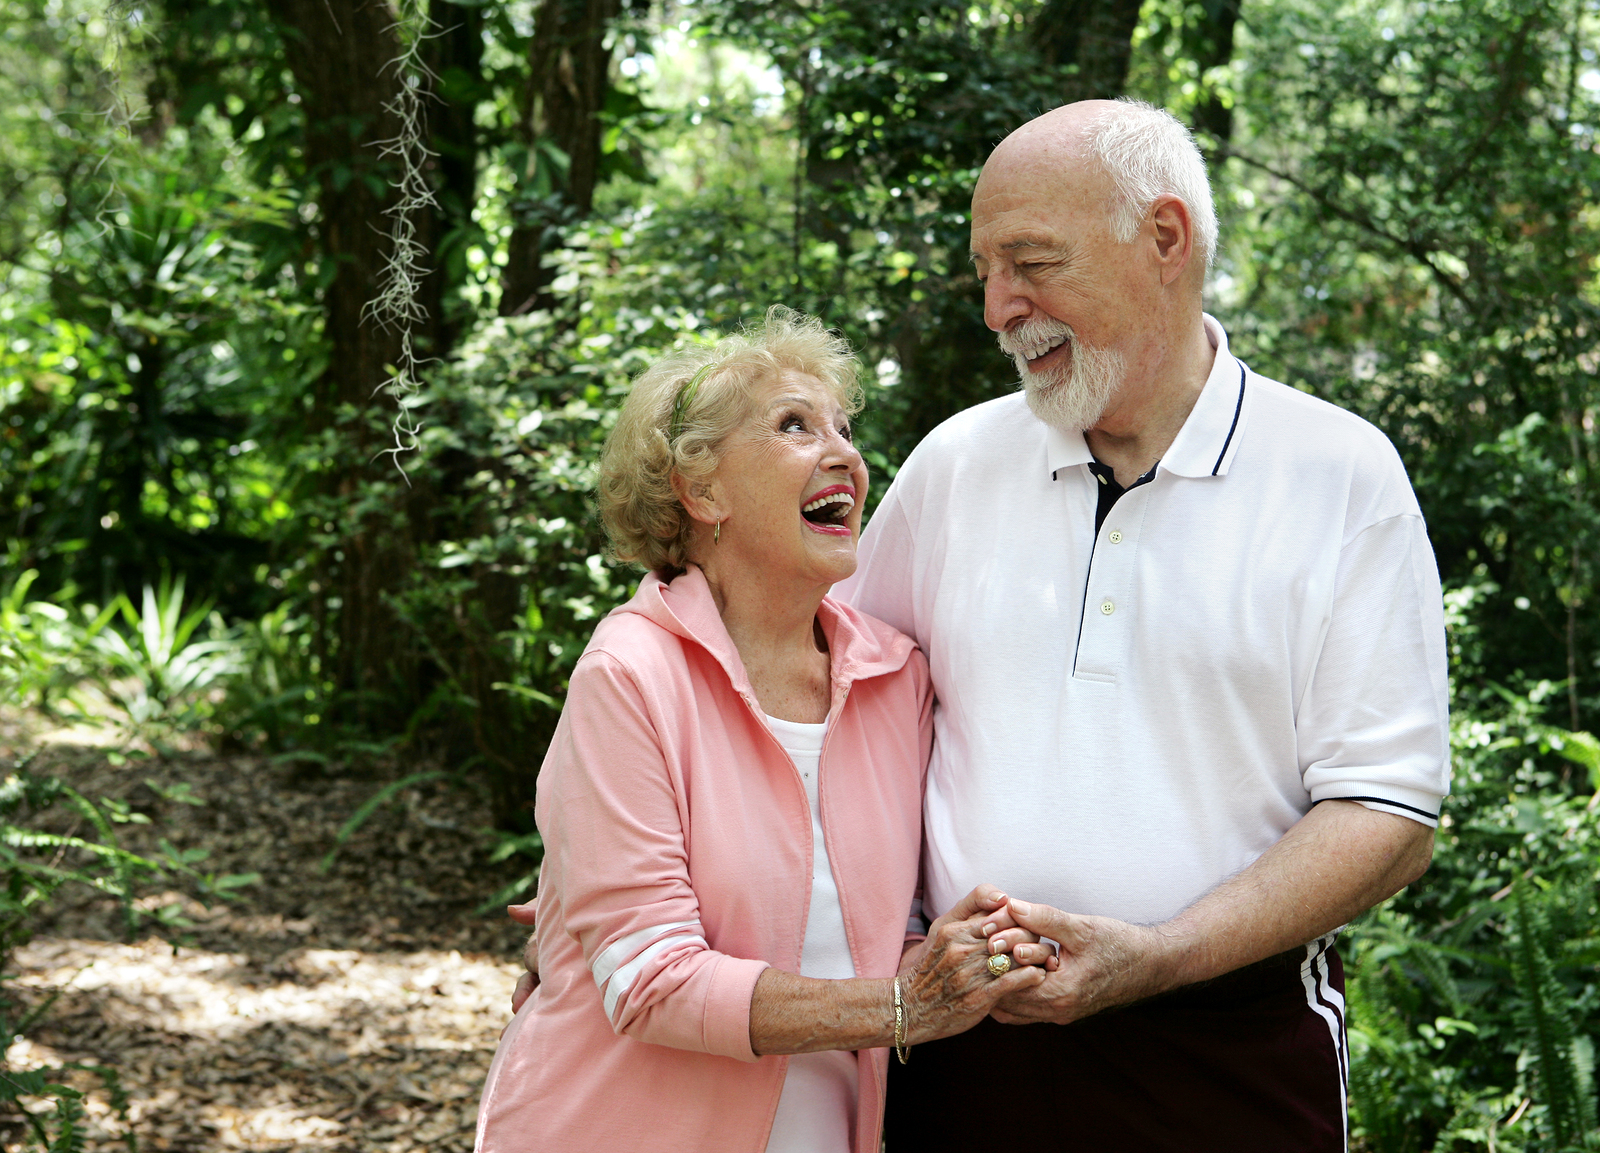 A happy active senior couple laughing together on a walk through the park in Laguna Hills, California.